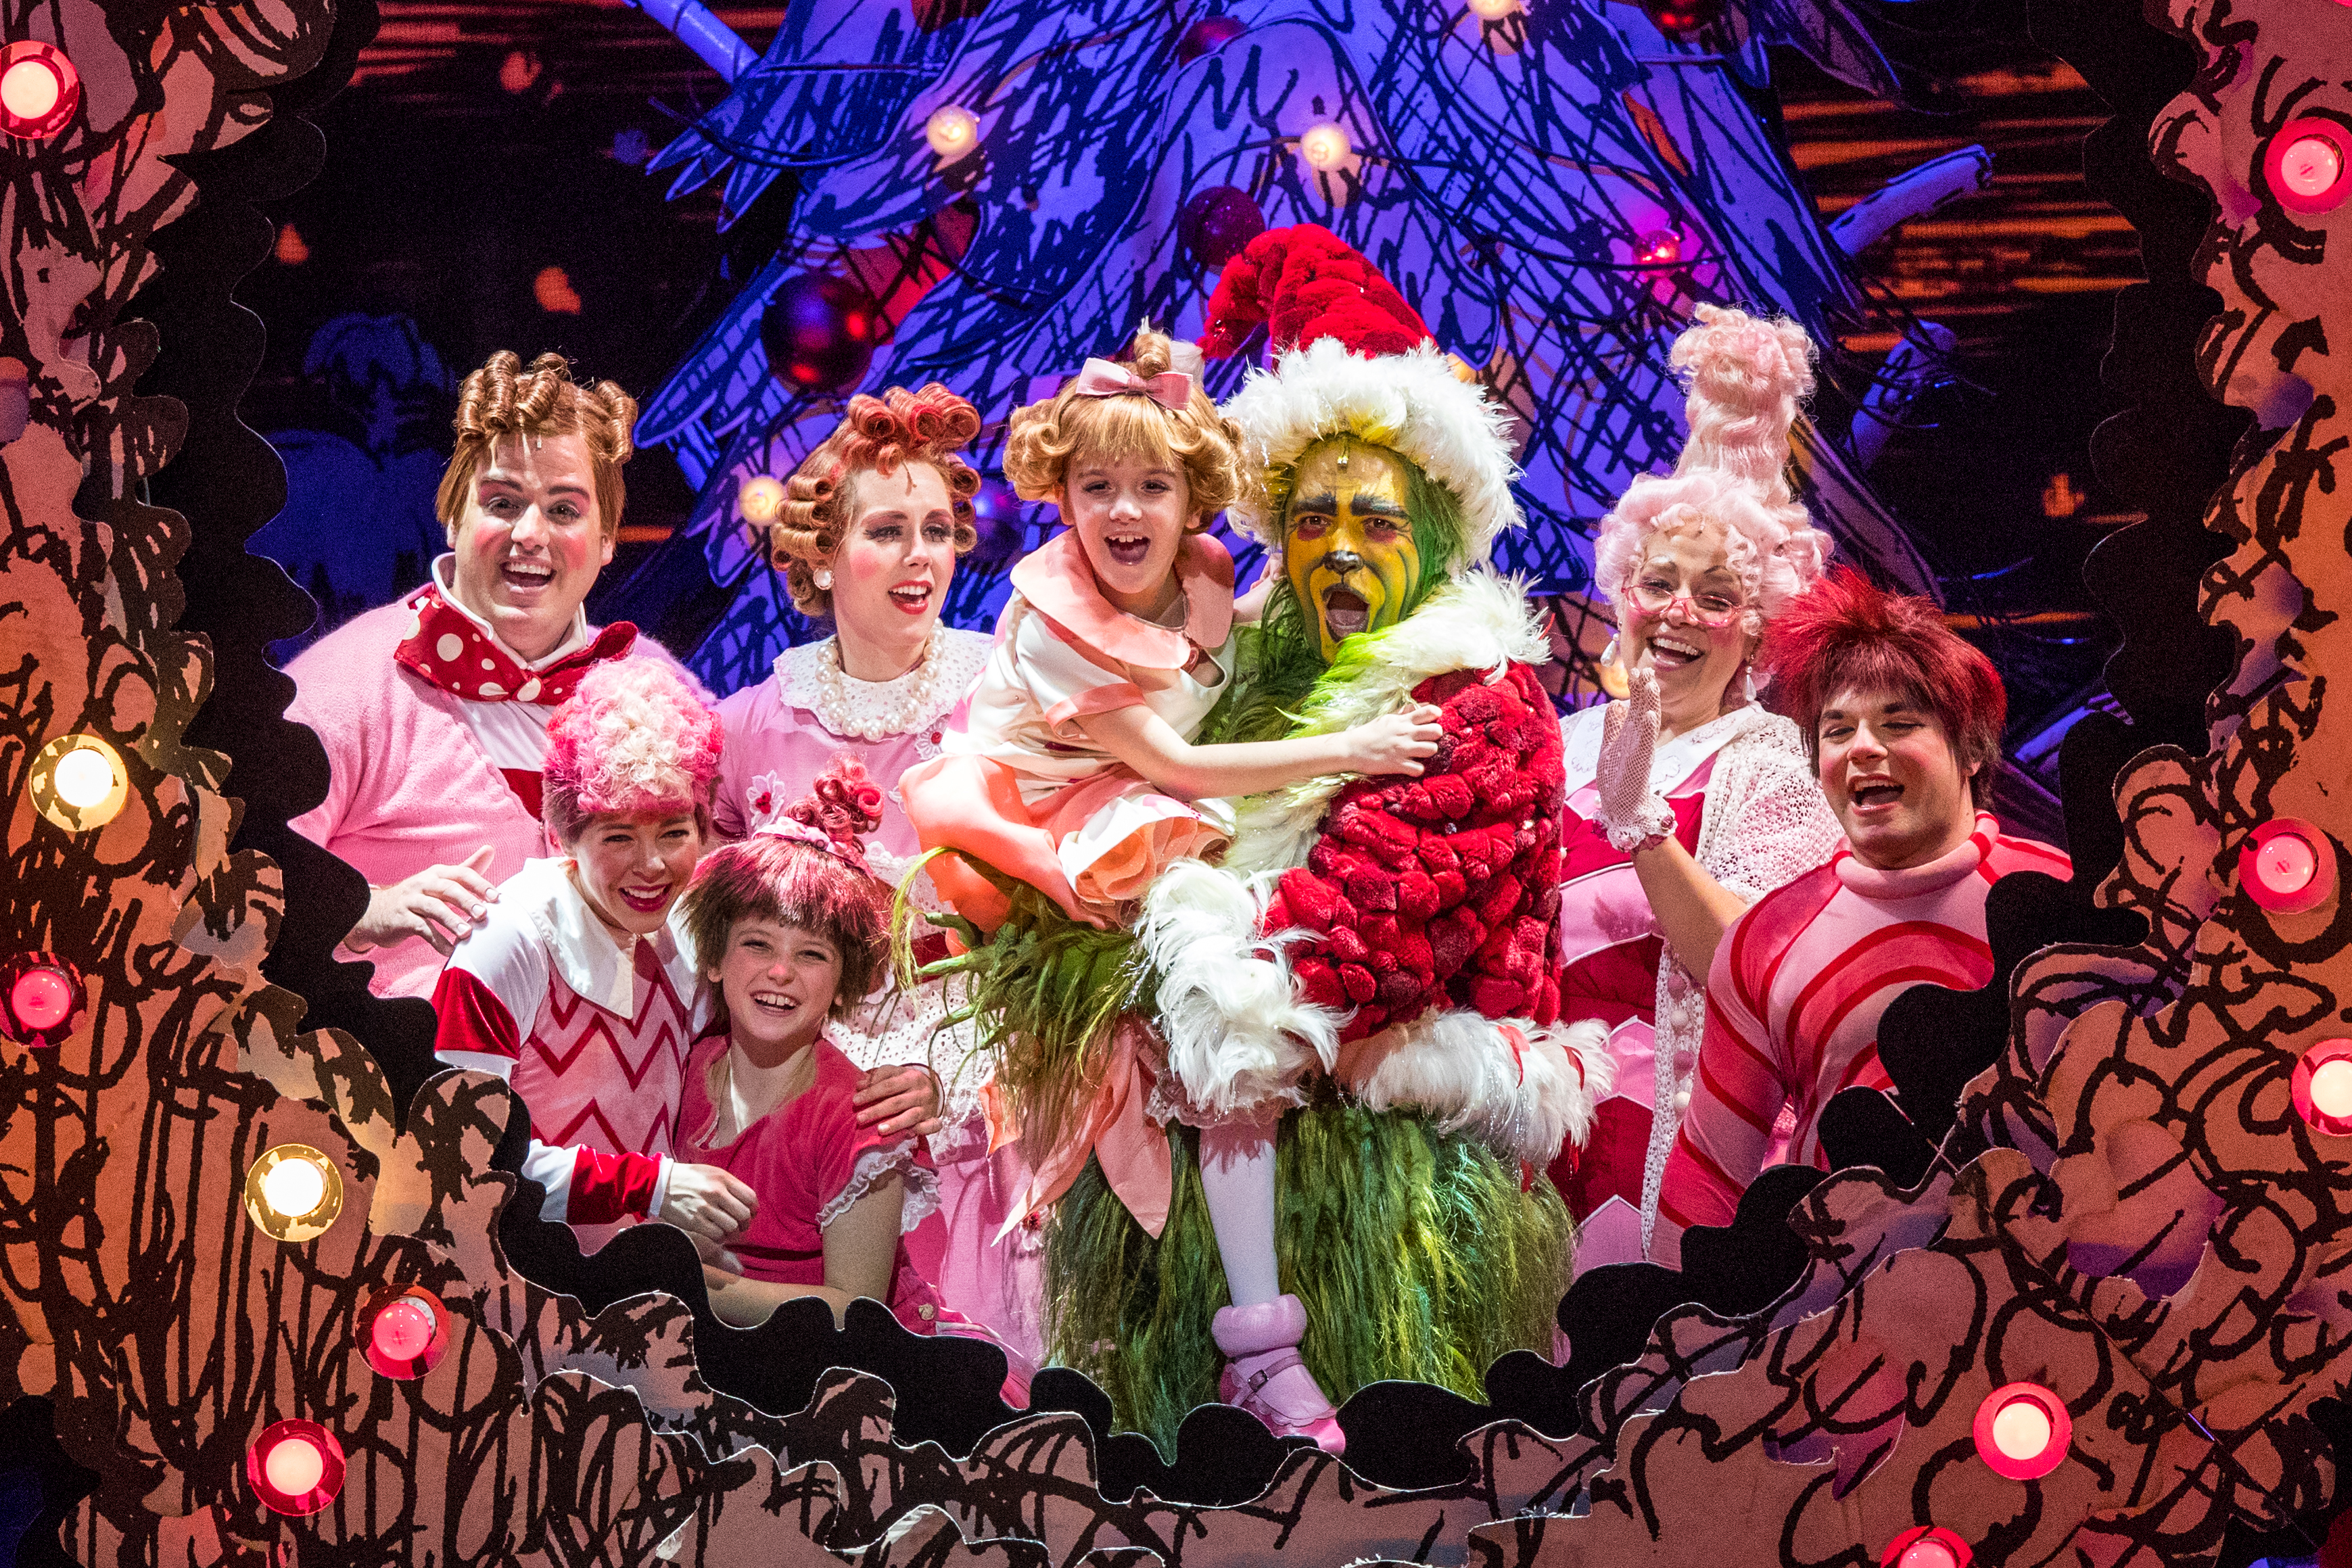 The Grinch Stole Christmas Cast.How The Grinch Stole Christmas At The Merriam Theater Ends